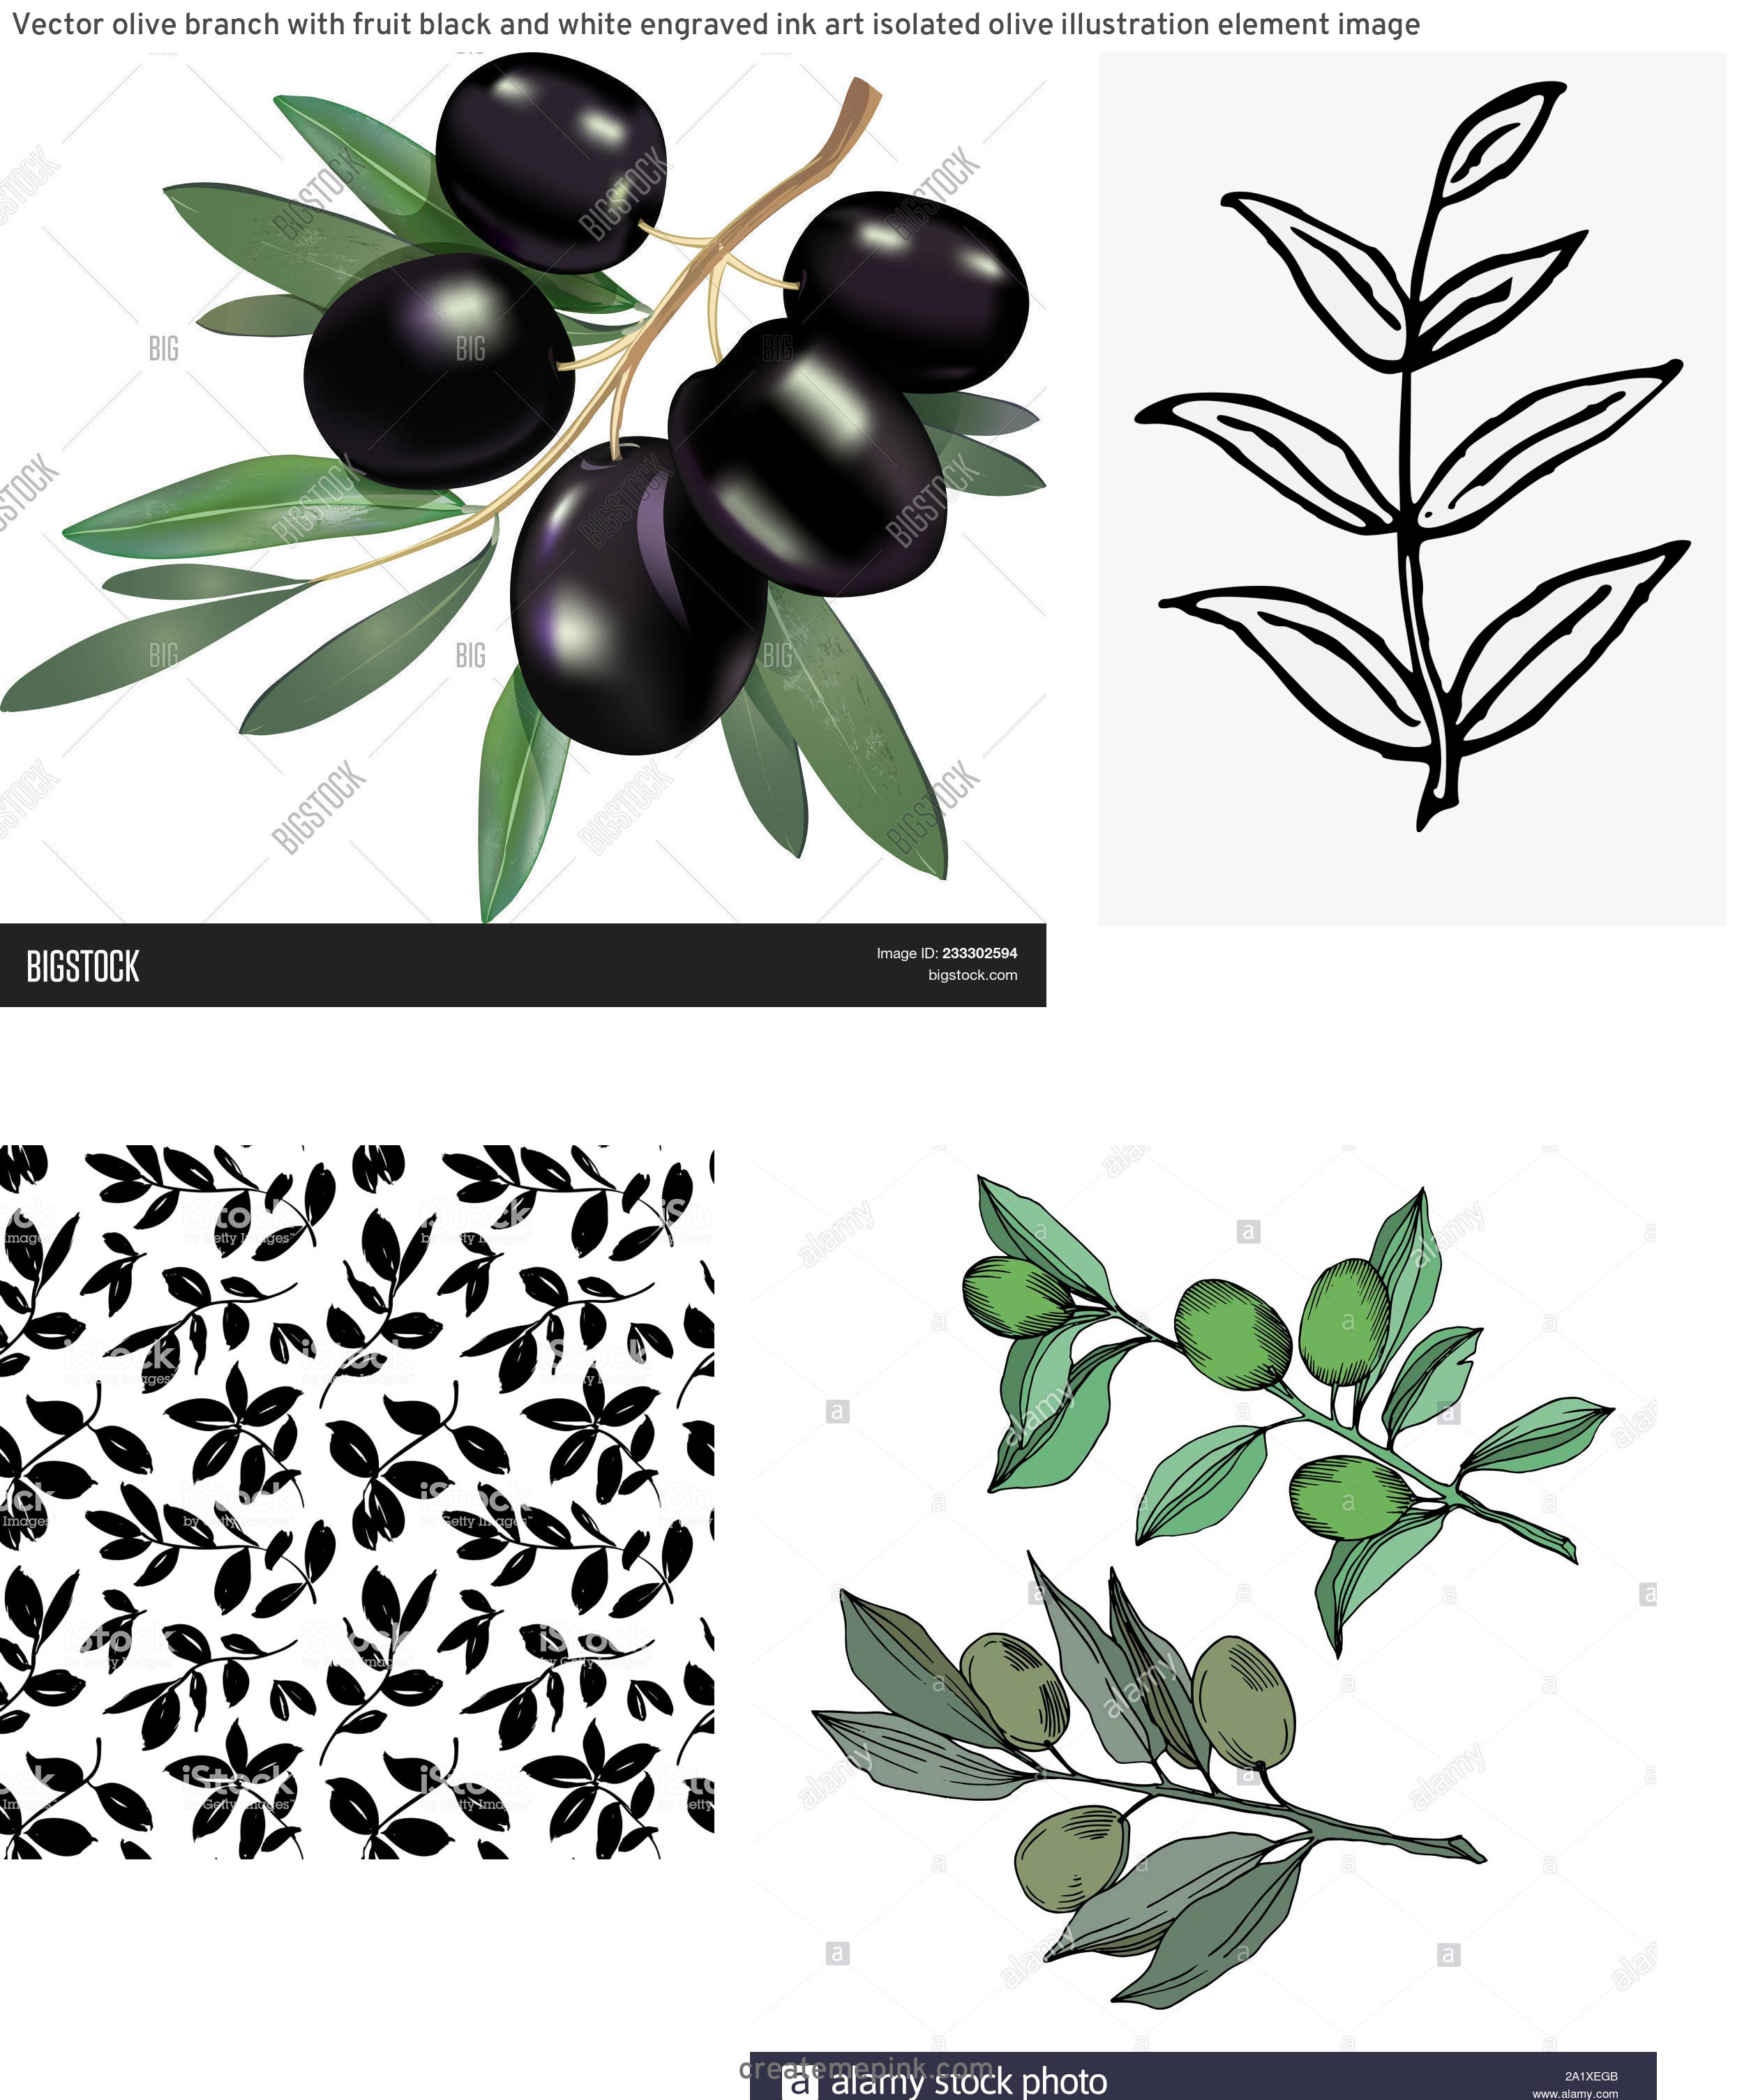 Olive Black And White Vector Leaves: Vector Olive Branch With Fruit Black And White Engraved Ink Art Isolated Olive Illustration Element Image